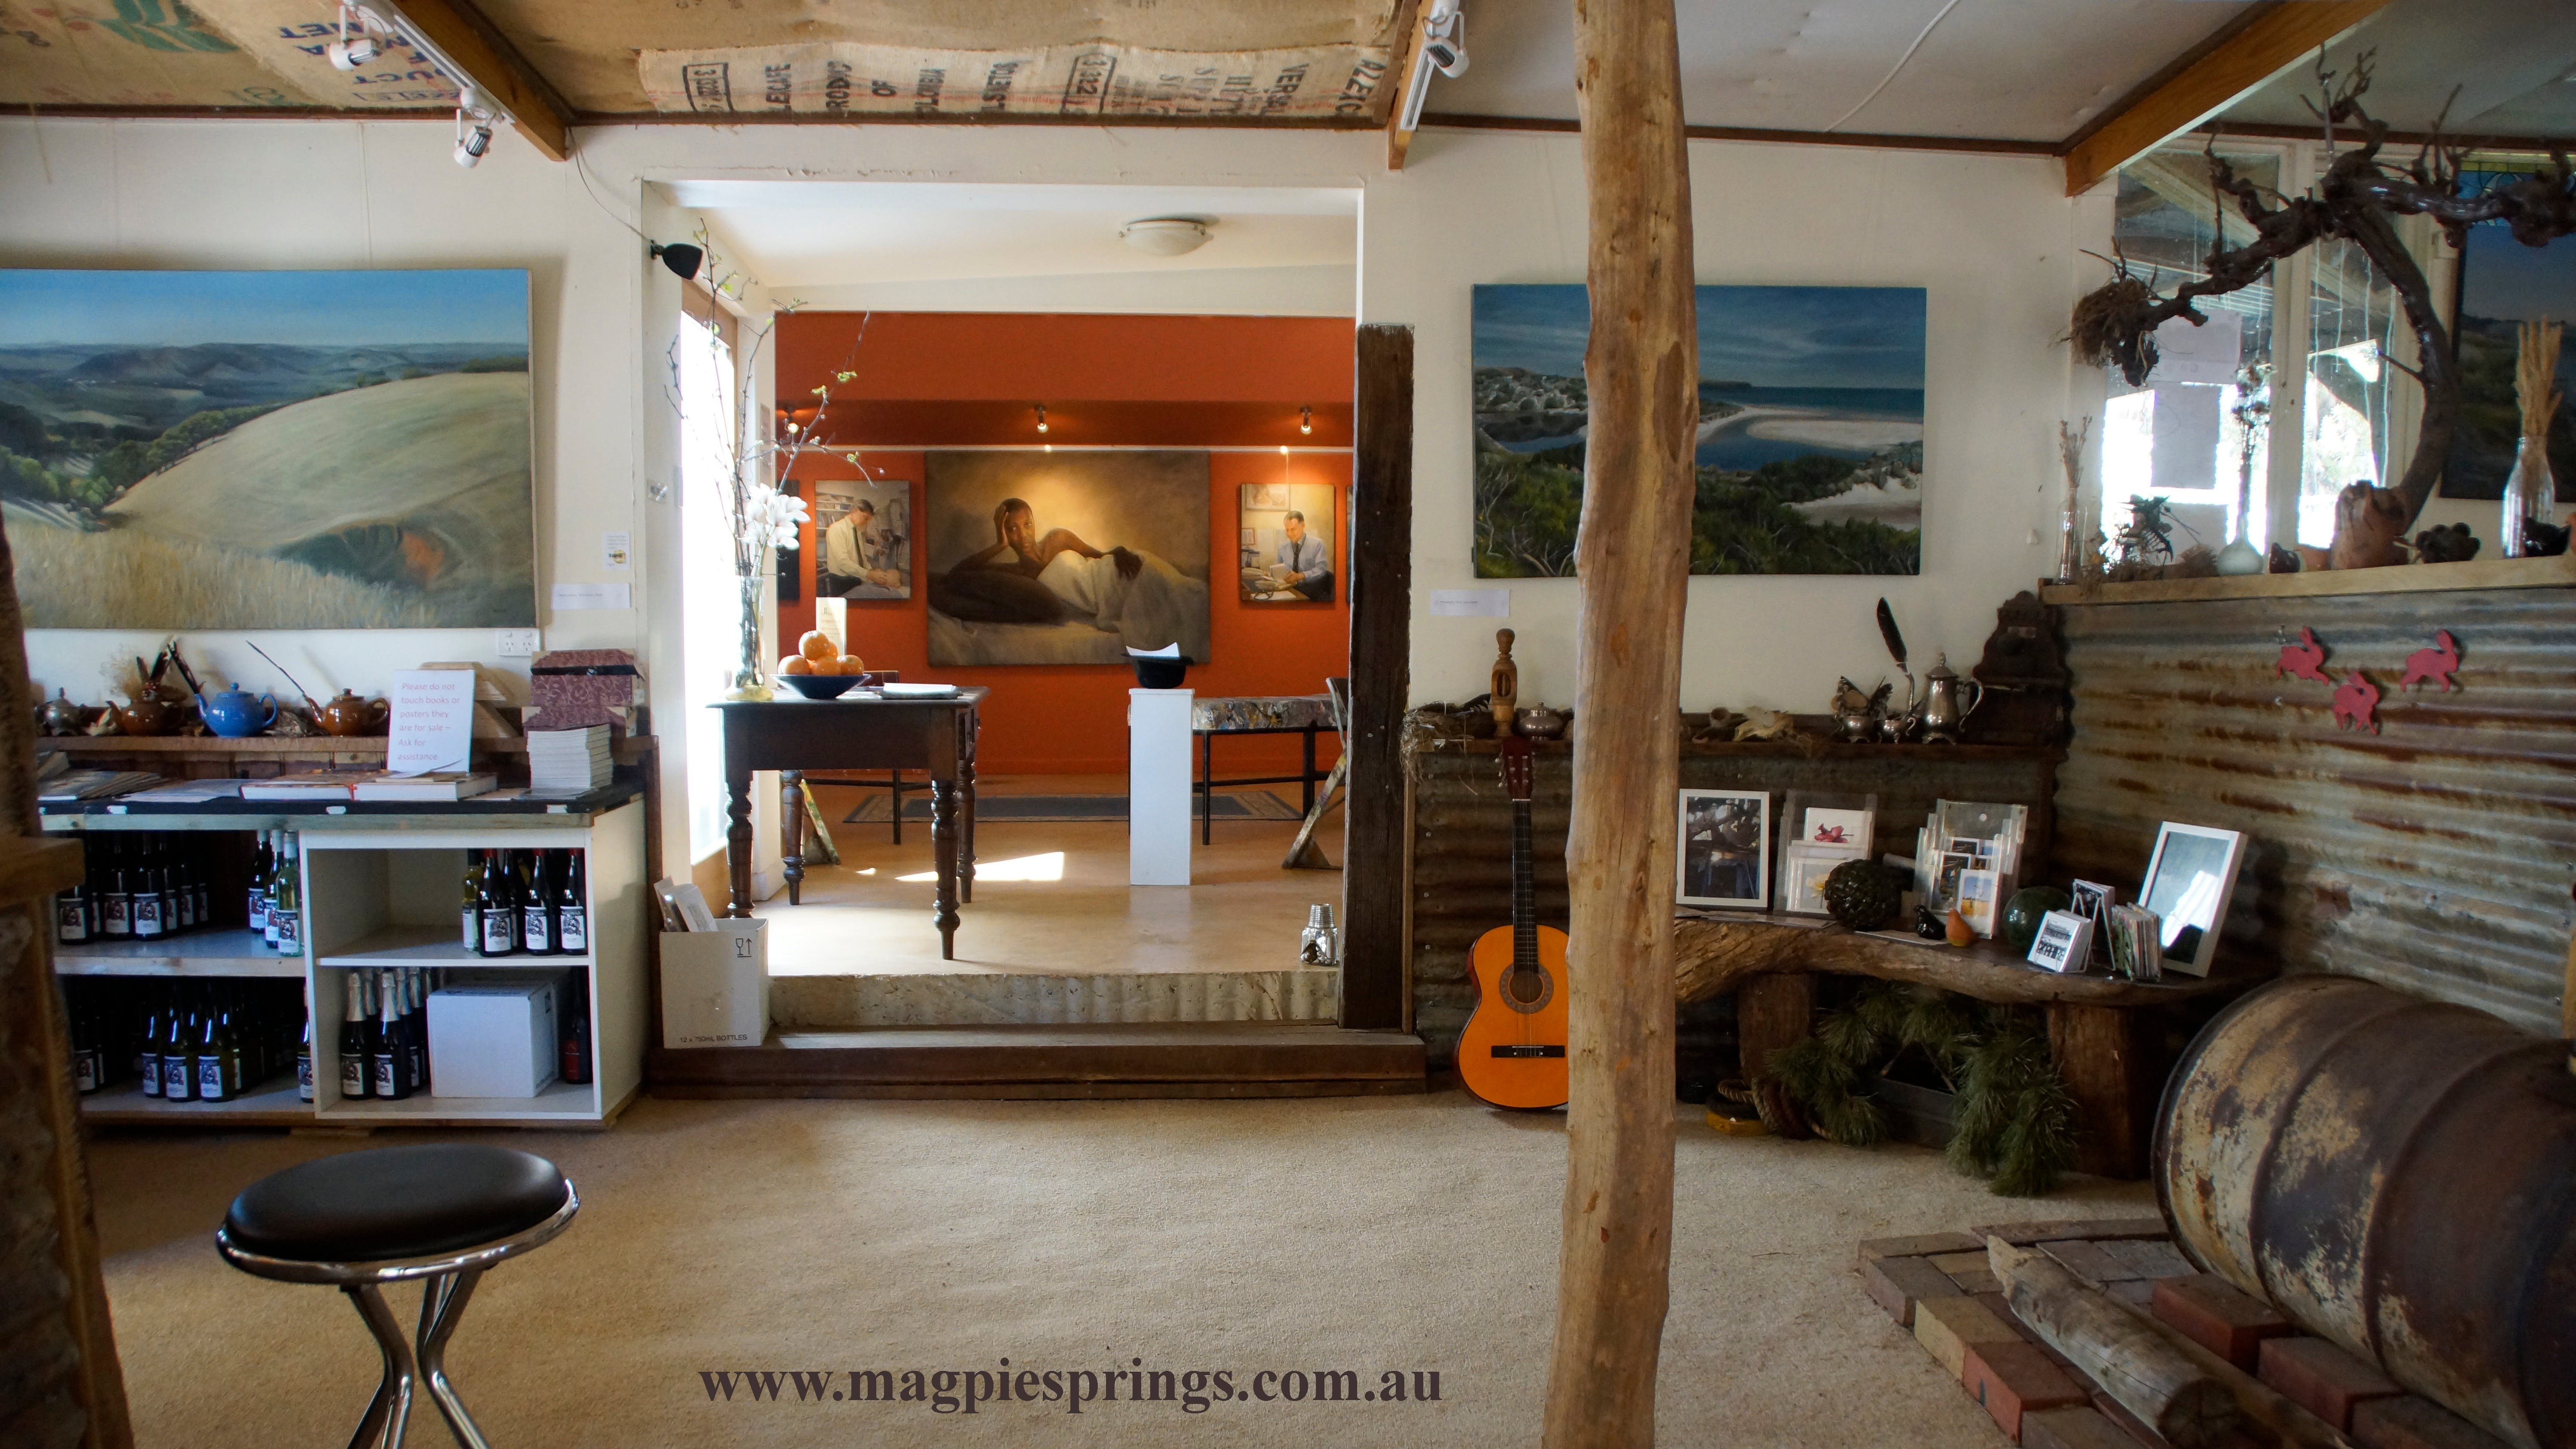 Magpie Springs gallery - Sydney Tourism